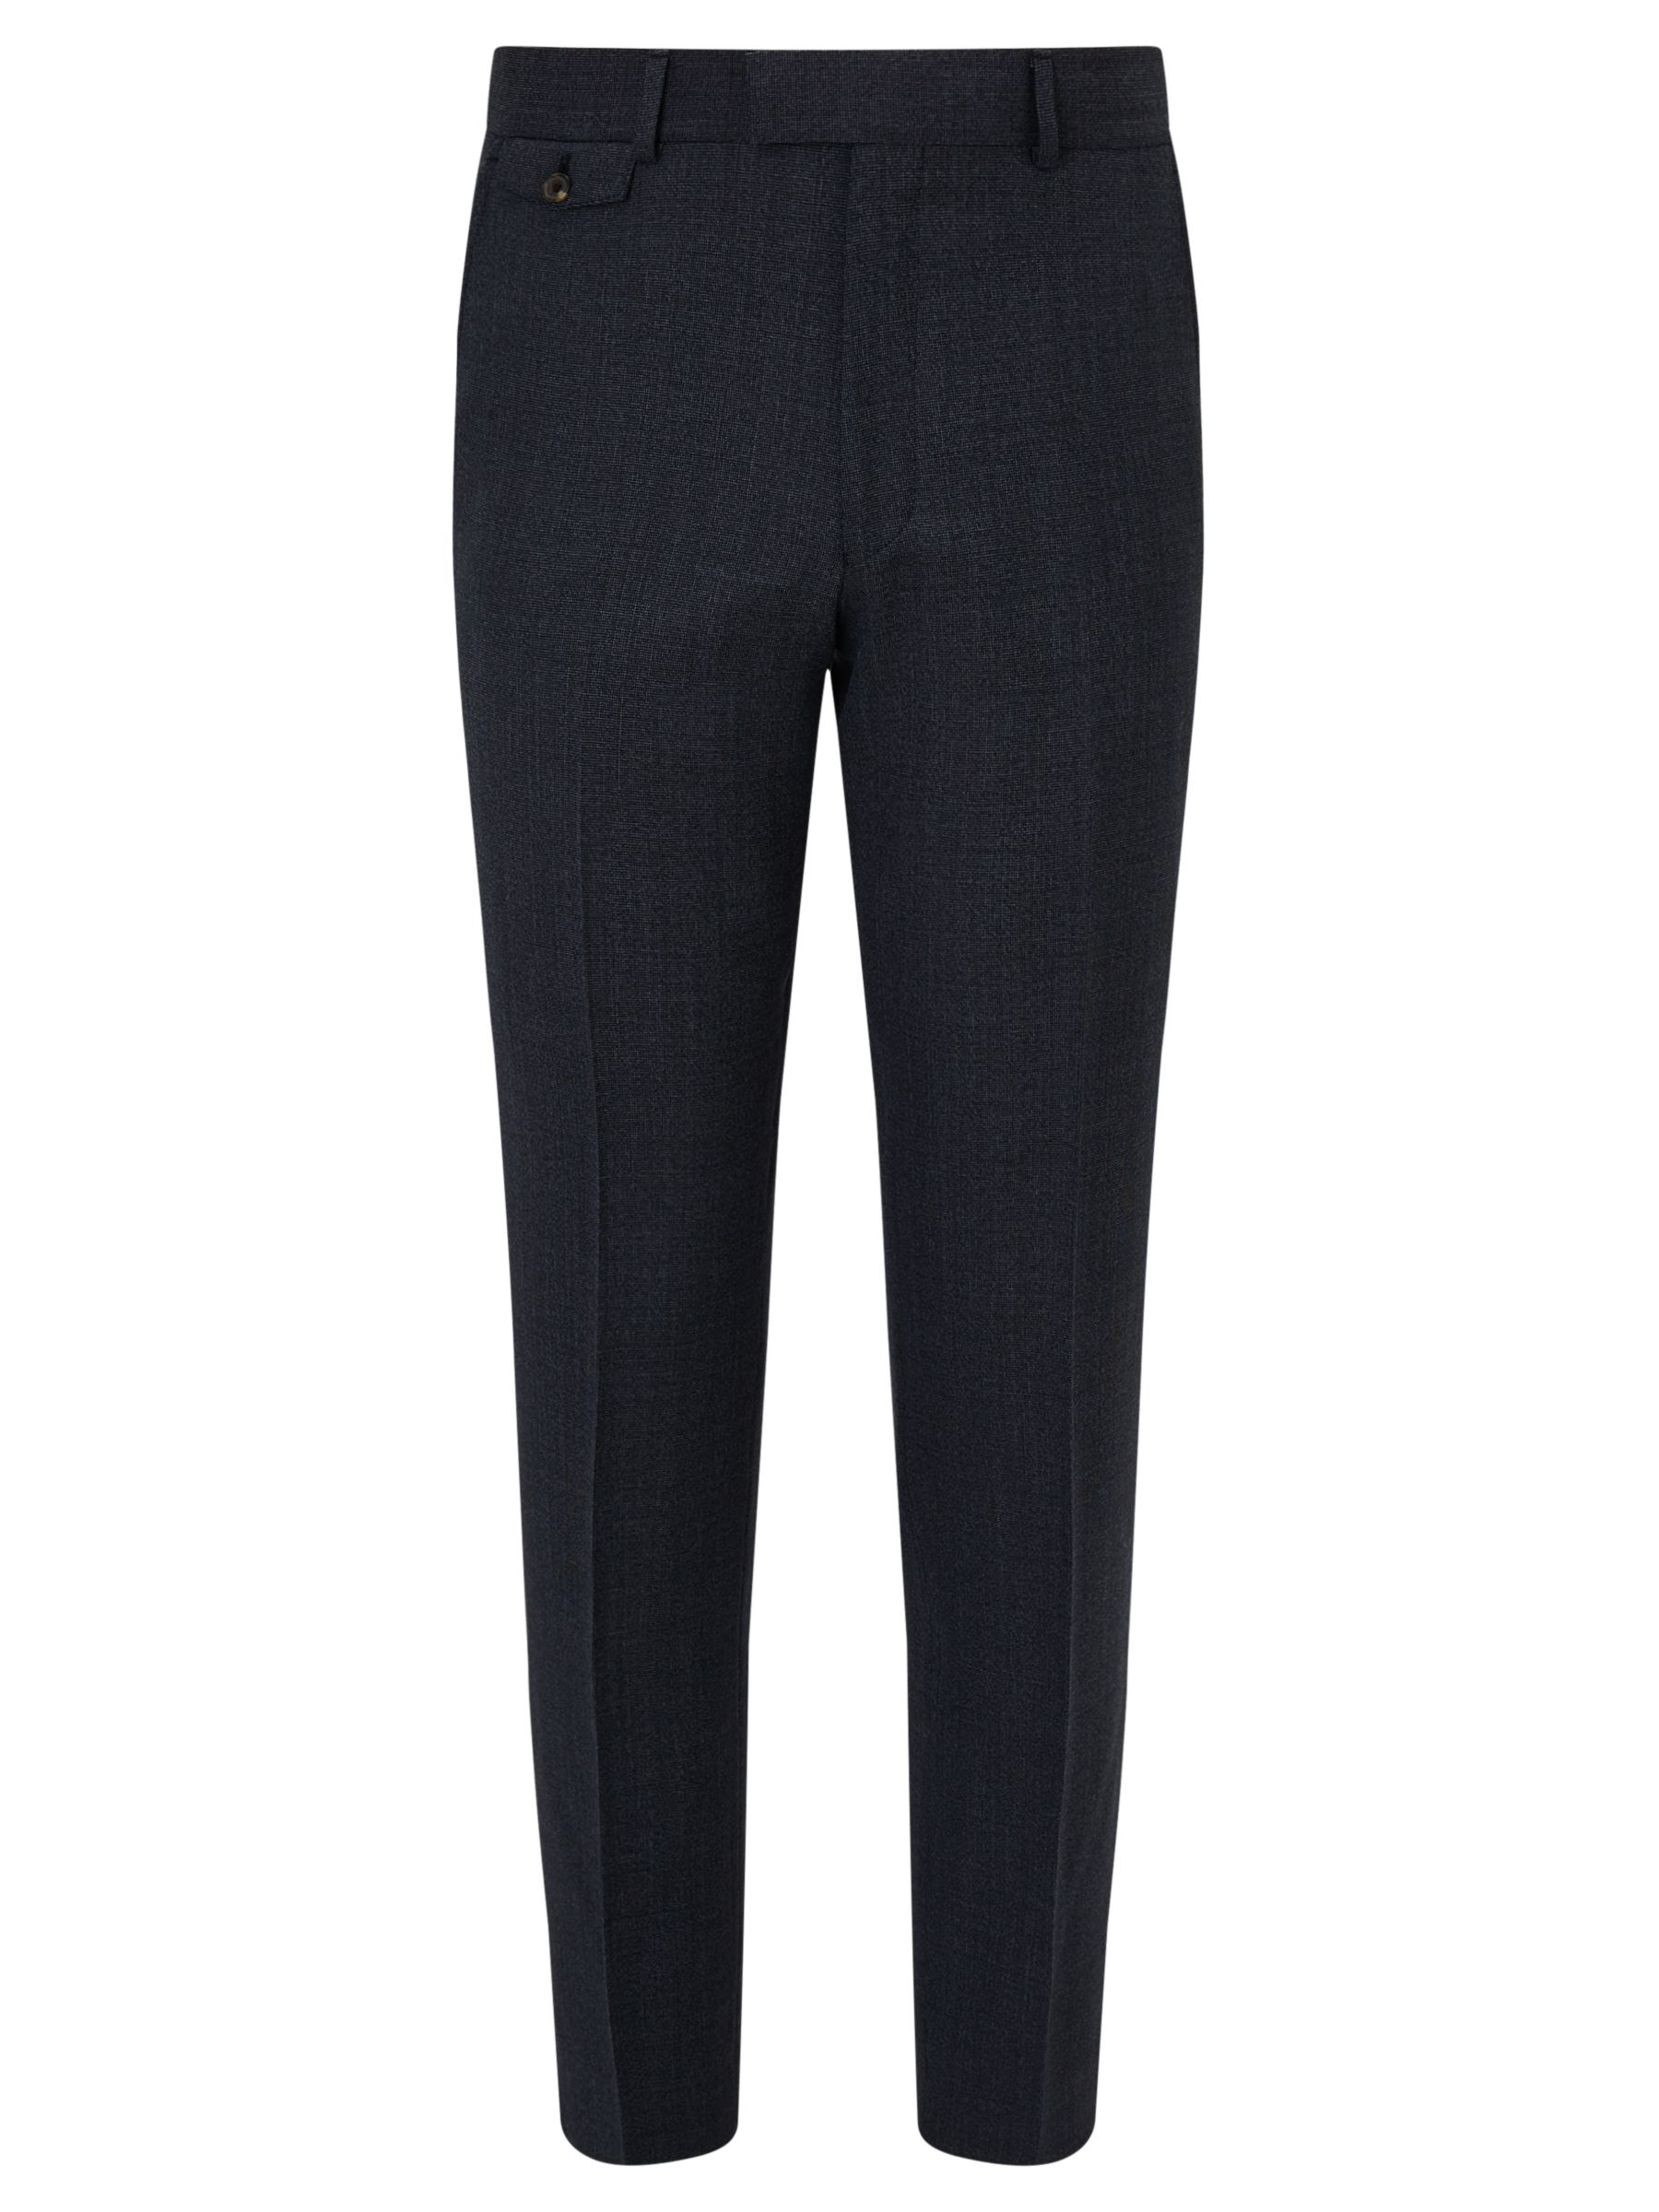 Chester by Chester Barrie Chester by Chester Barrie Pindot Wool Tailored Suit Trousers, Airforce